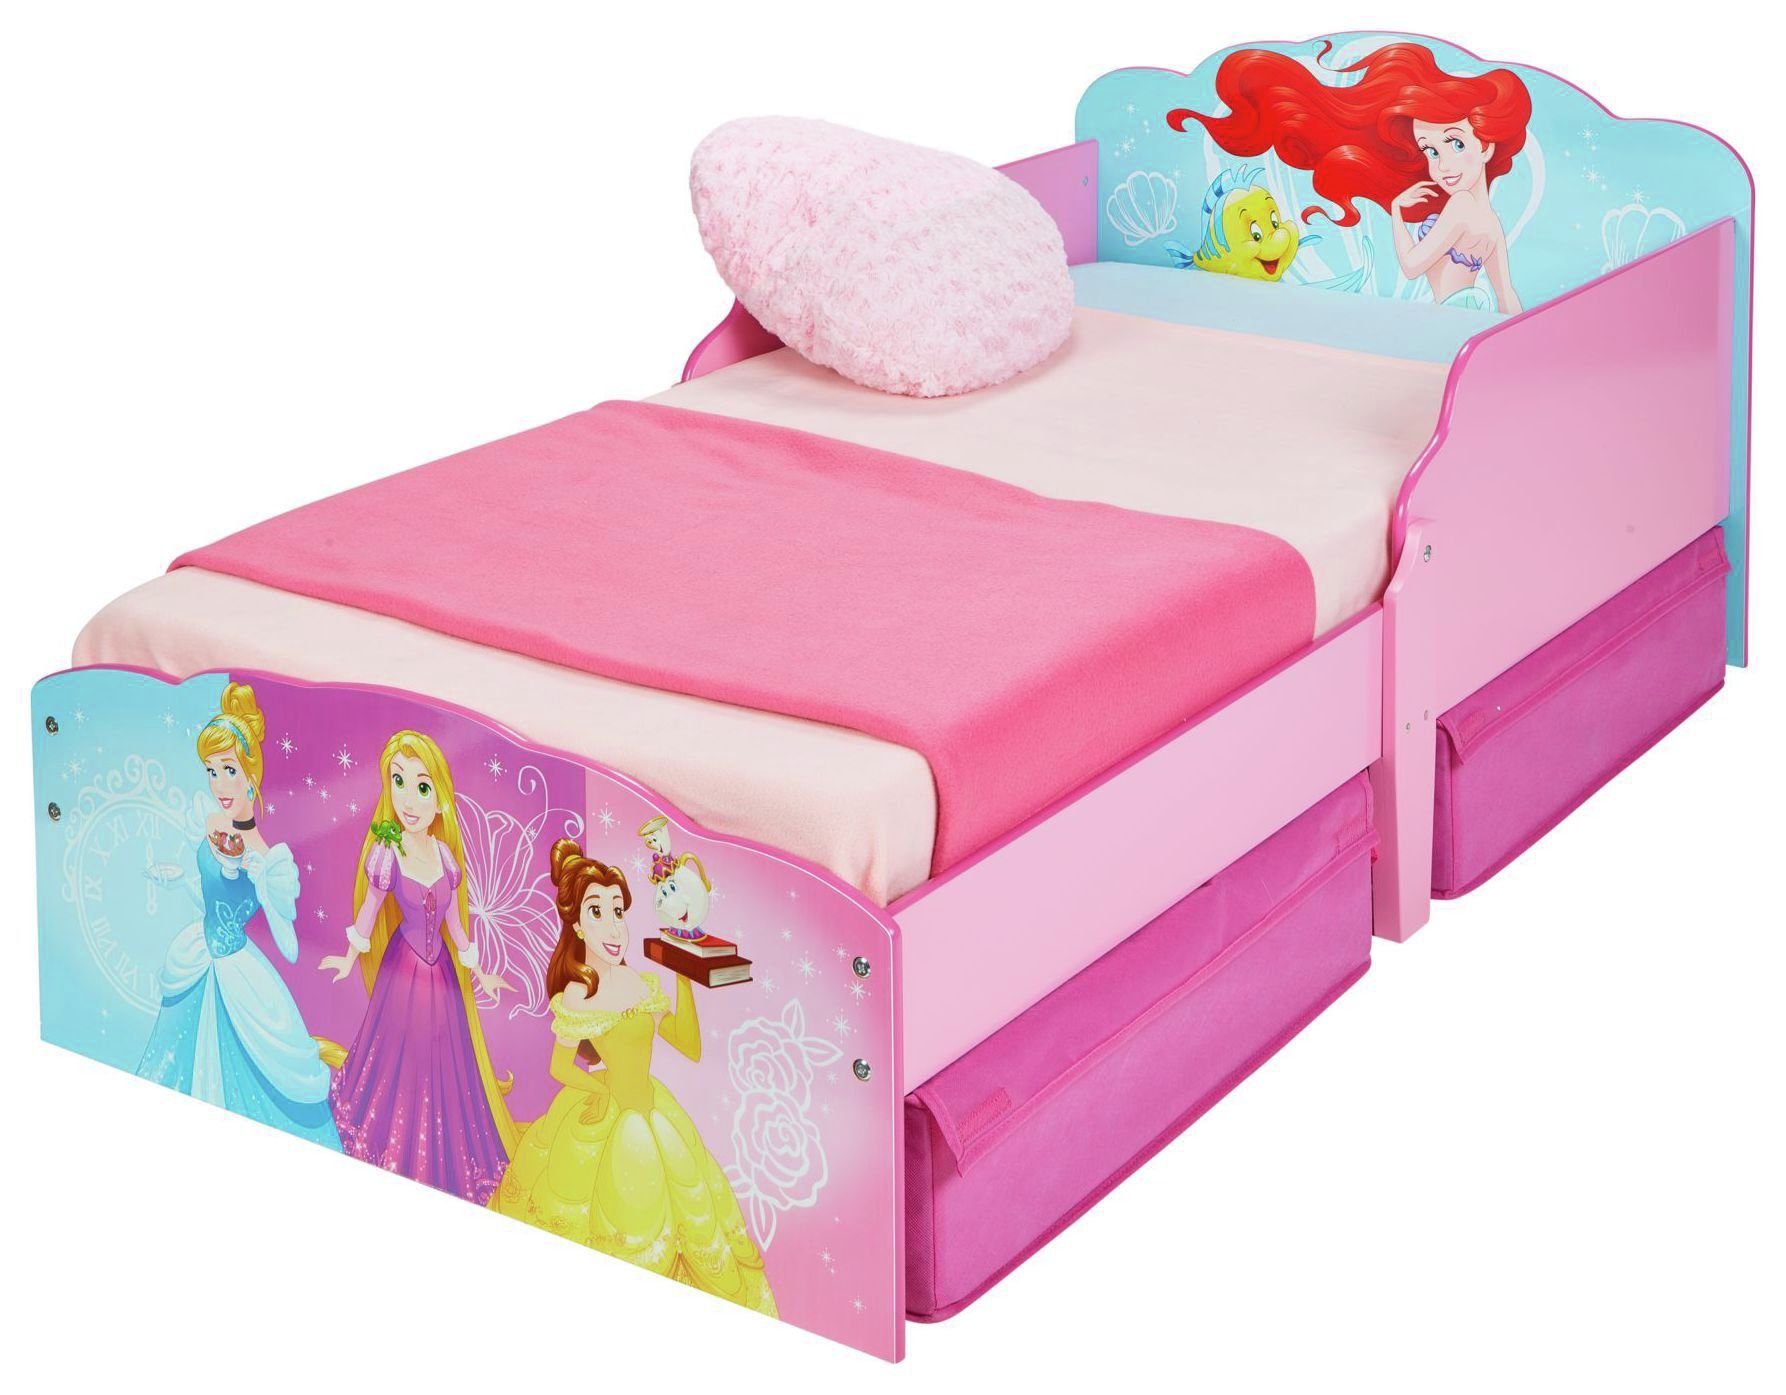 Argos Princess Bed Disney New Princess Toddler Bed With Drawer 7235270 Argos